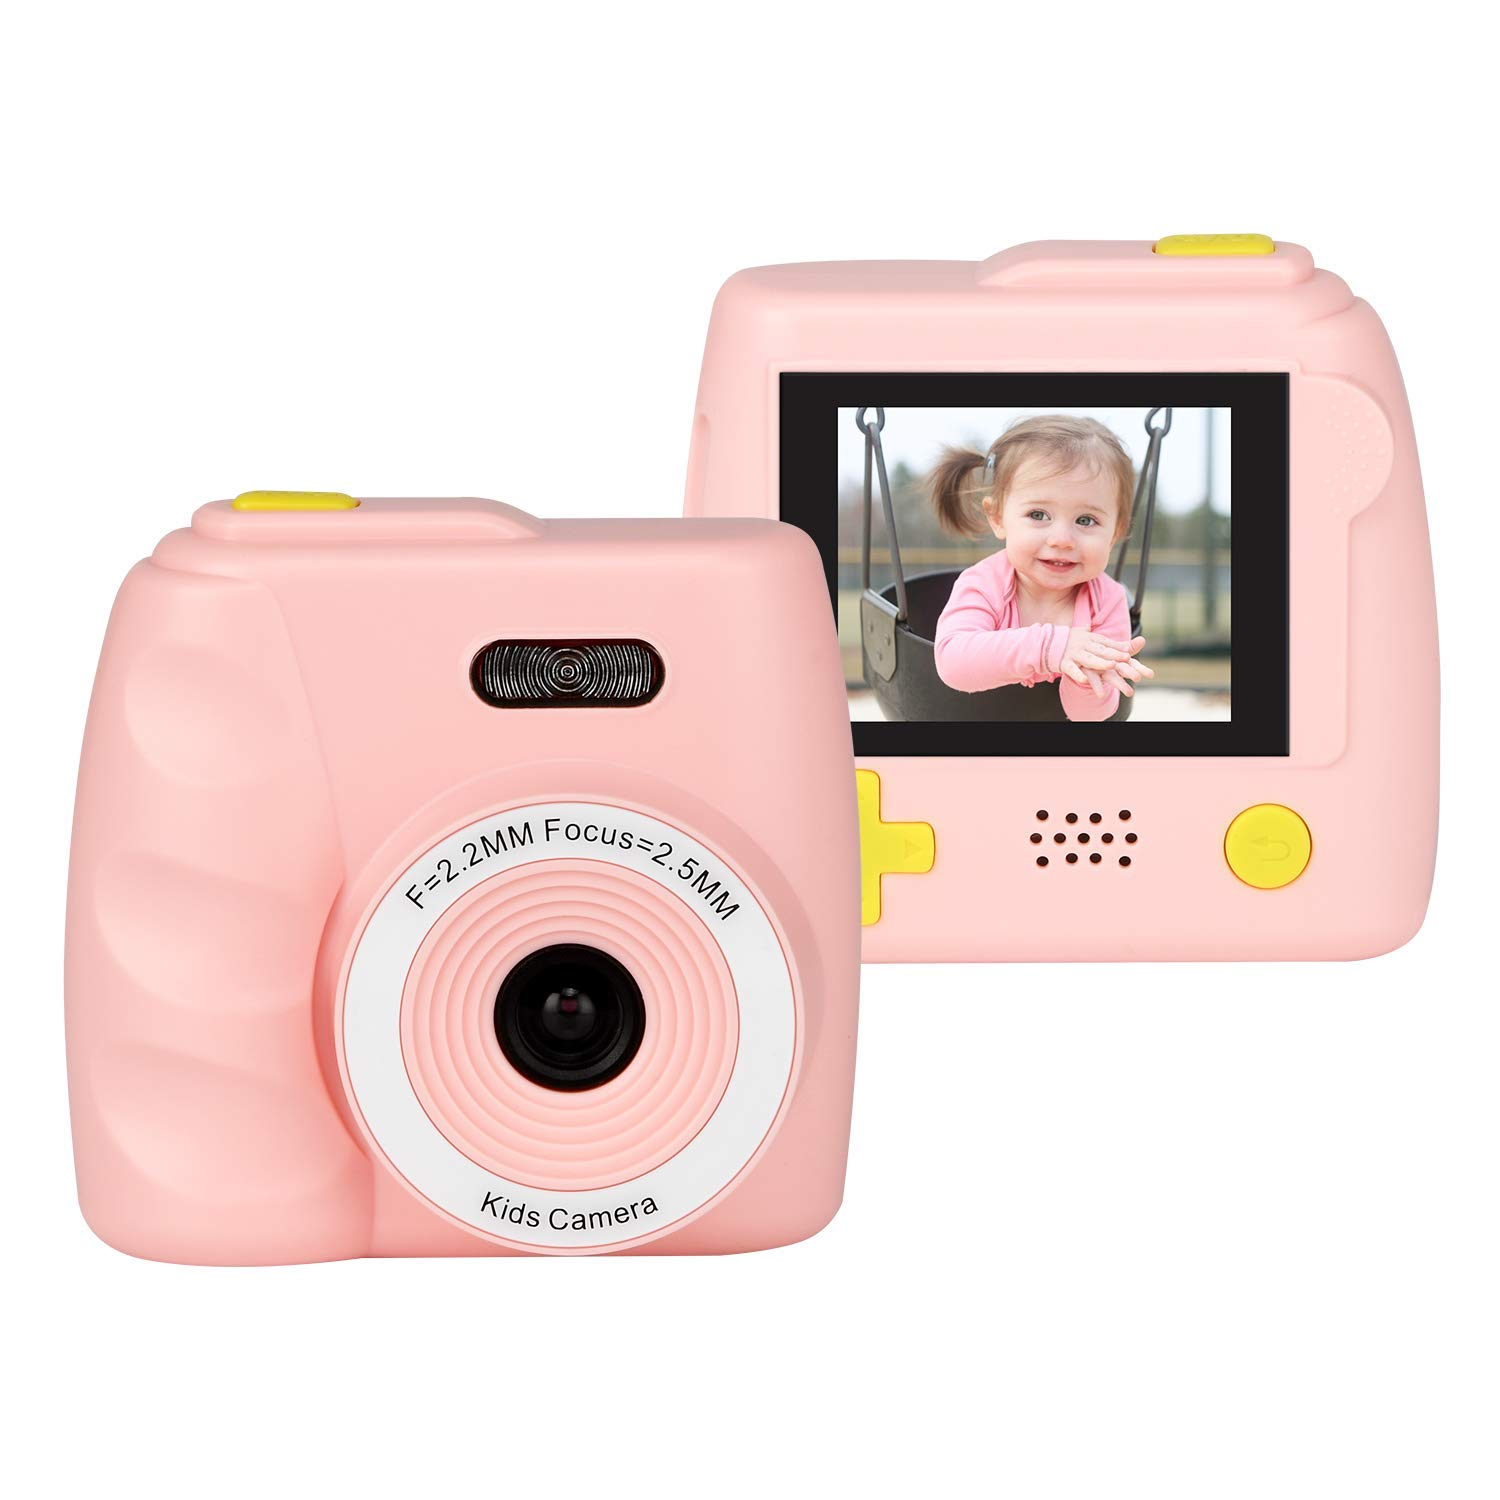 Kids Camera Gifts for 4-8 Year Old boys or girls, Great Gift Mini Child Camcorder for children with Soft Silicone Shell and 5 Mega pixel front lens 2.0 inch HD screen (32G TF card not included)